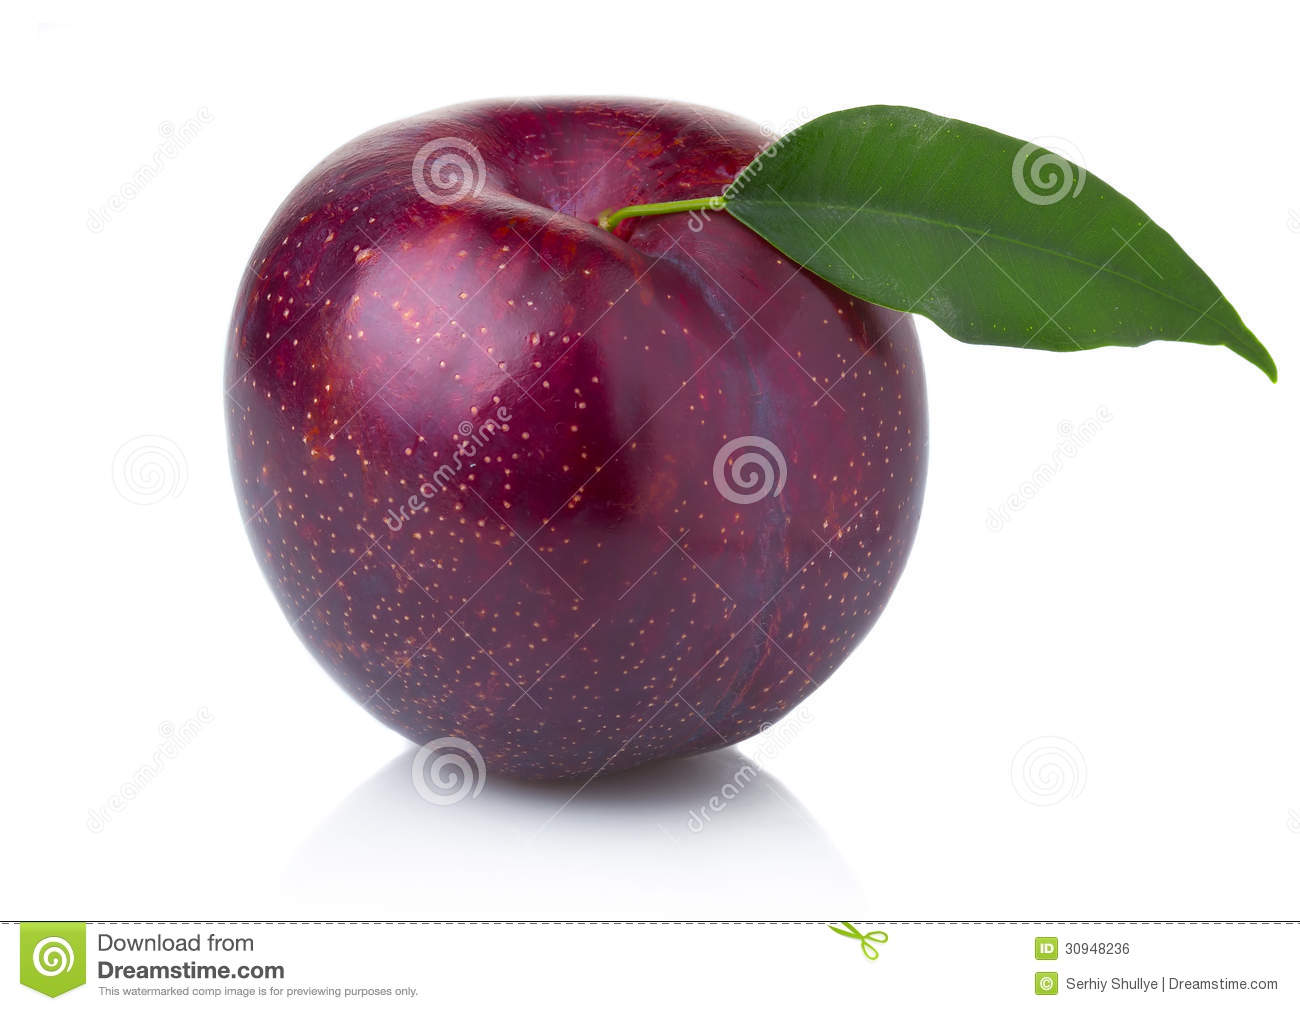 fruitful yield is a plum a fruit